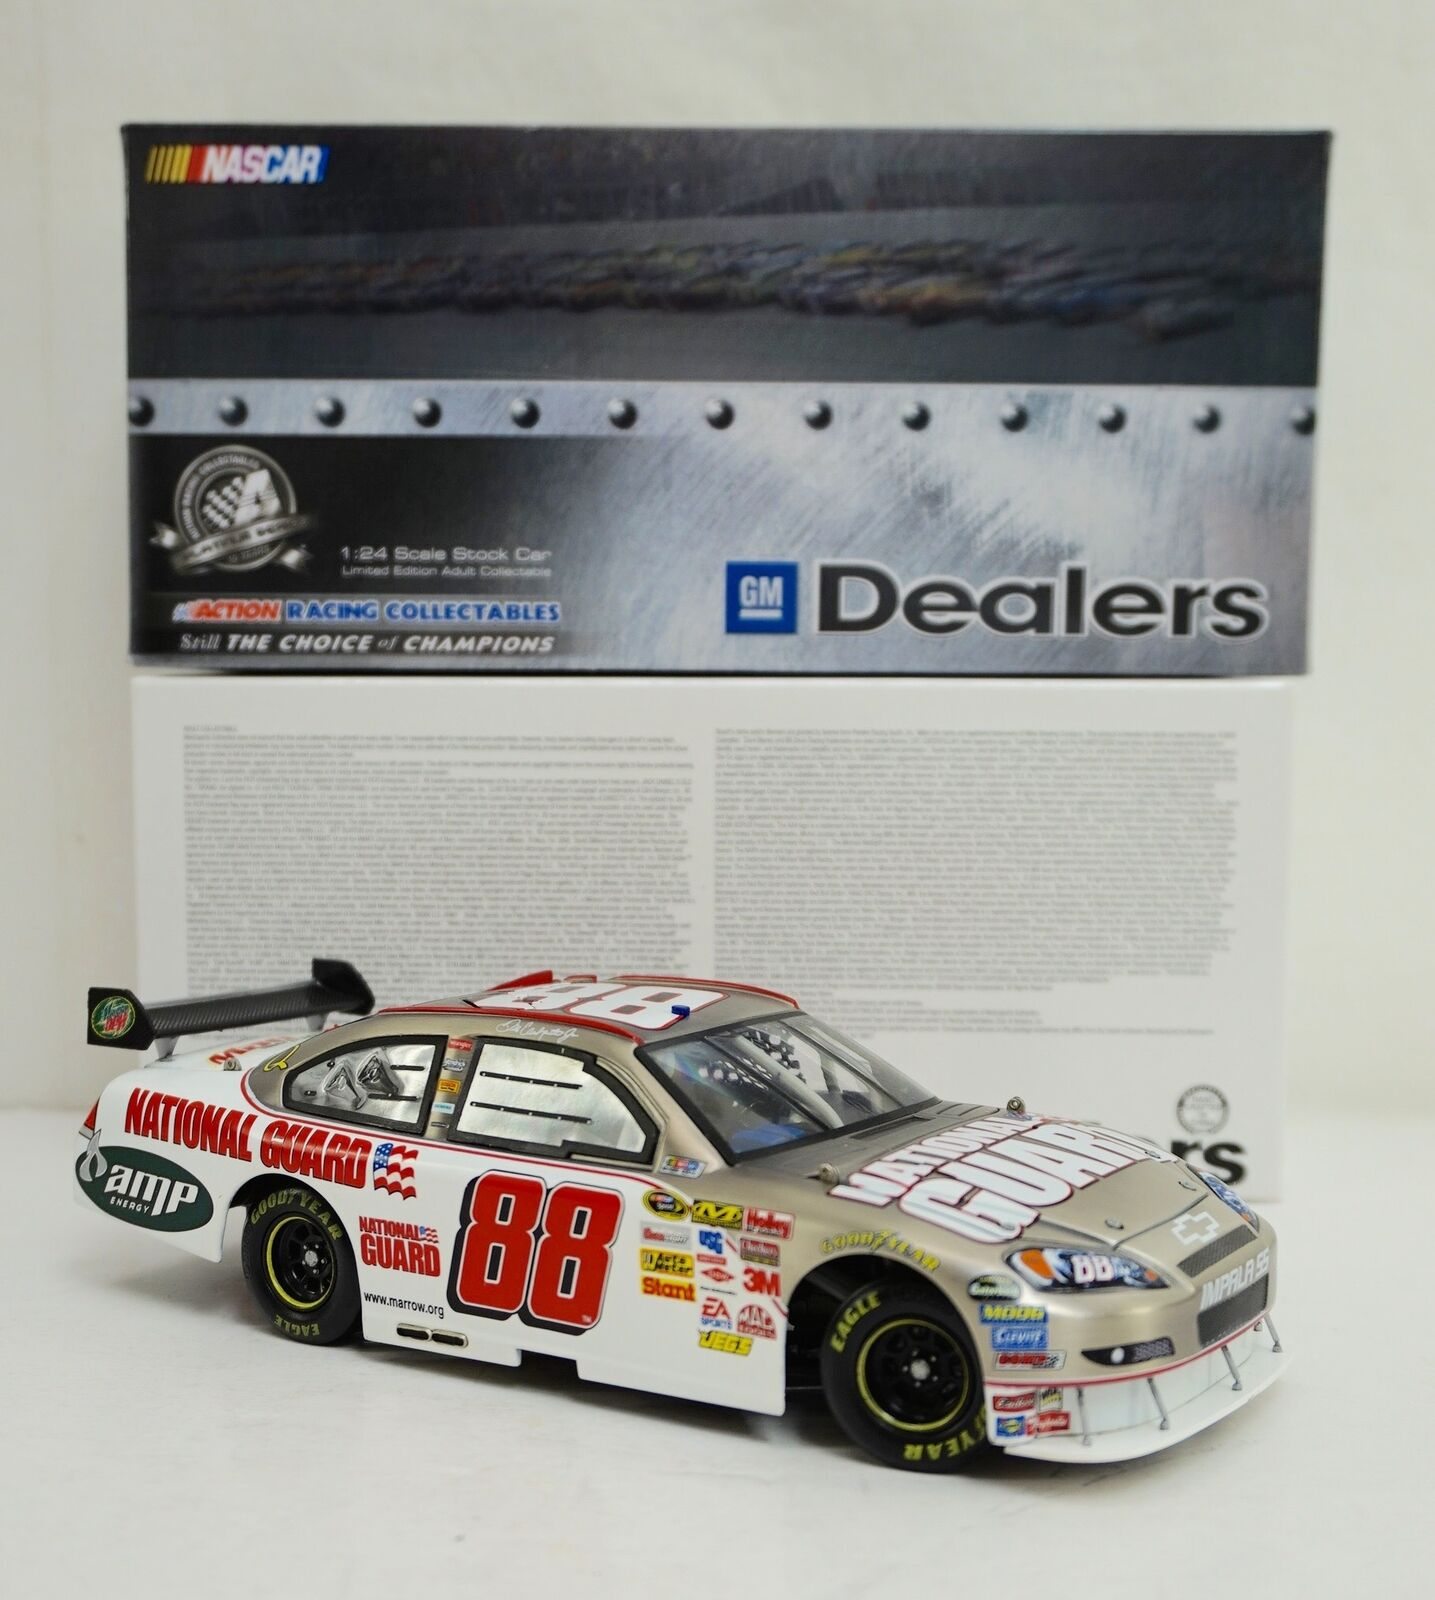 GM Dealers Diecast  Dale Earnhardt Jr - Brushed Metal National Guard